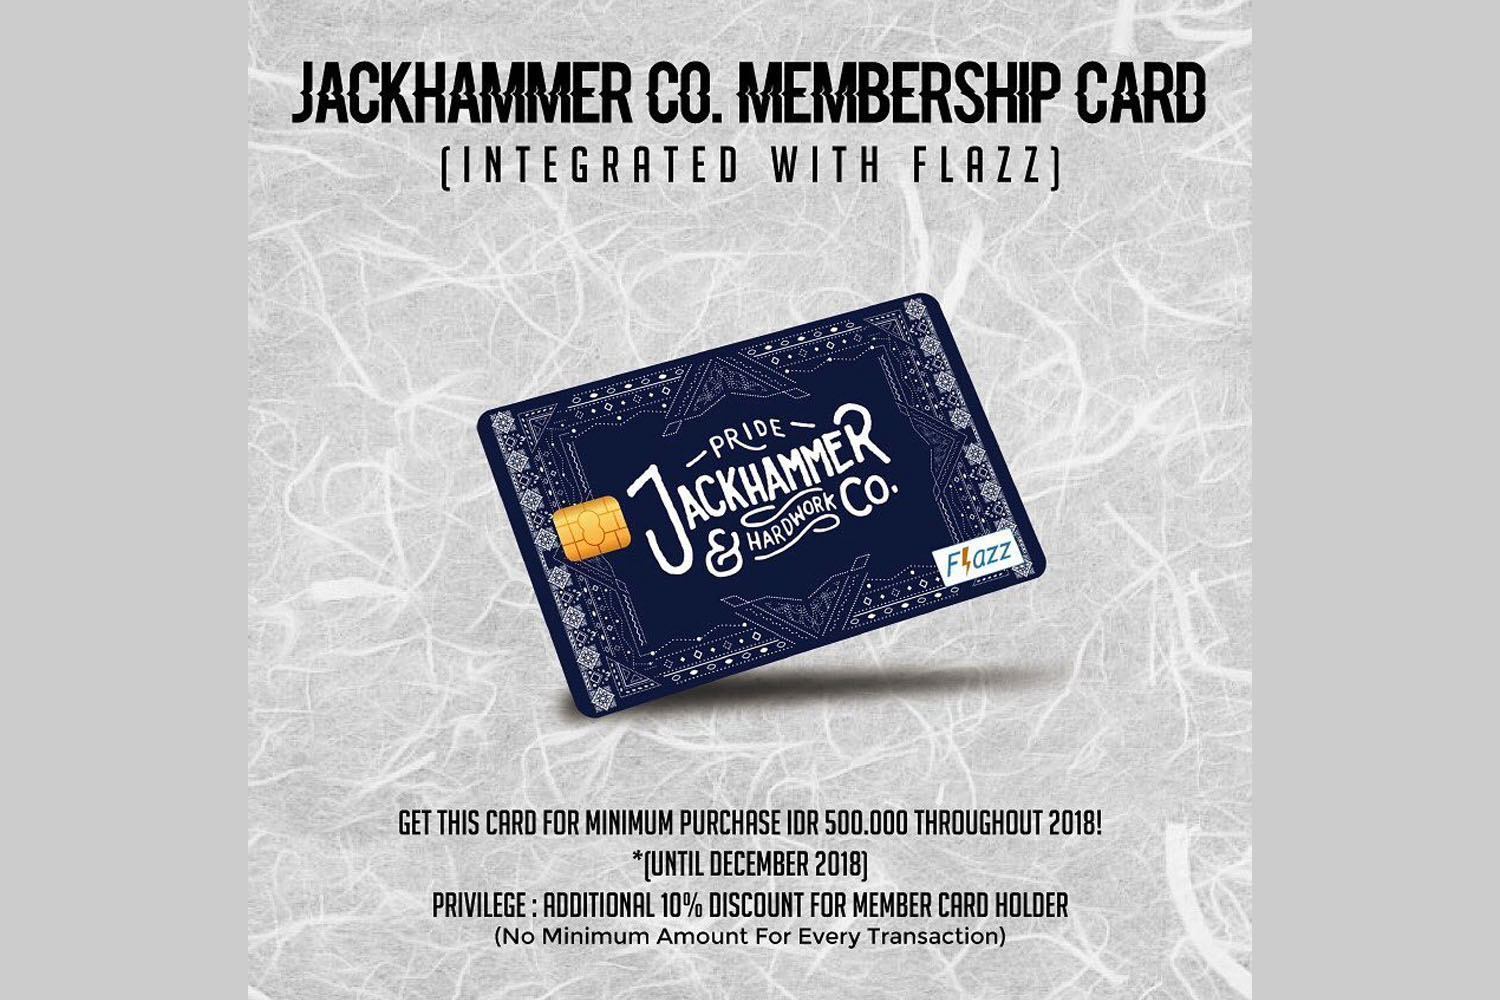 Nhbl Jackhammer Co Rewards Loyal Customers With Membership Card Flazz The Bca Integrated Is Dedicated For Repeating Who Regularly Purchase Their Products